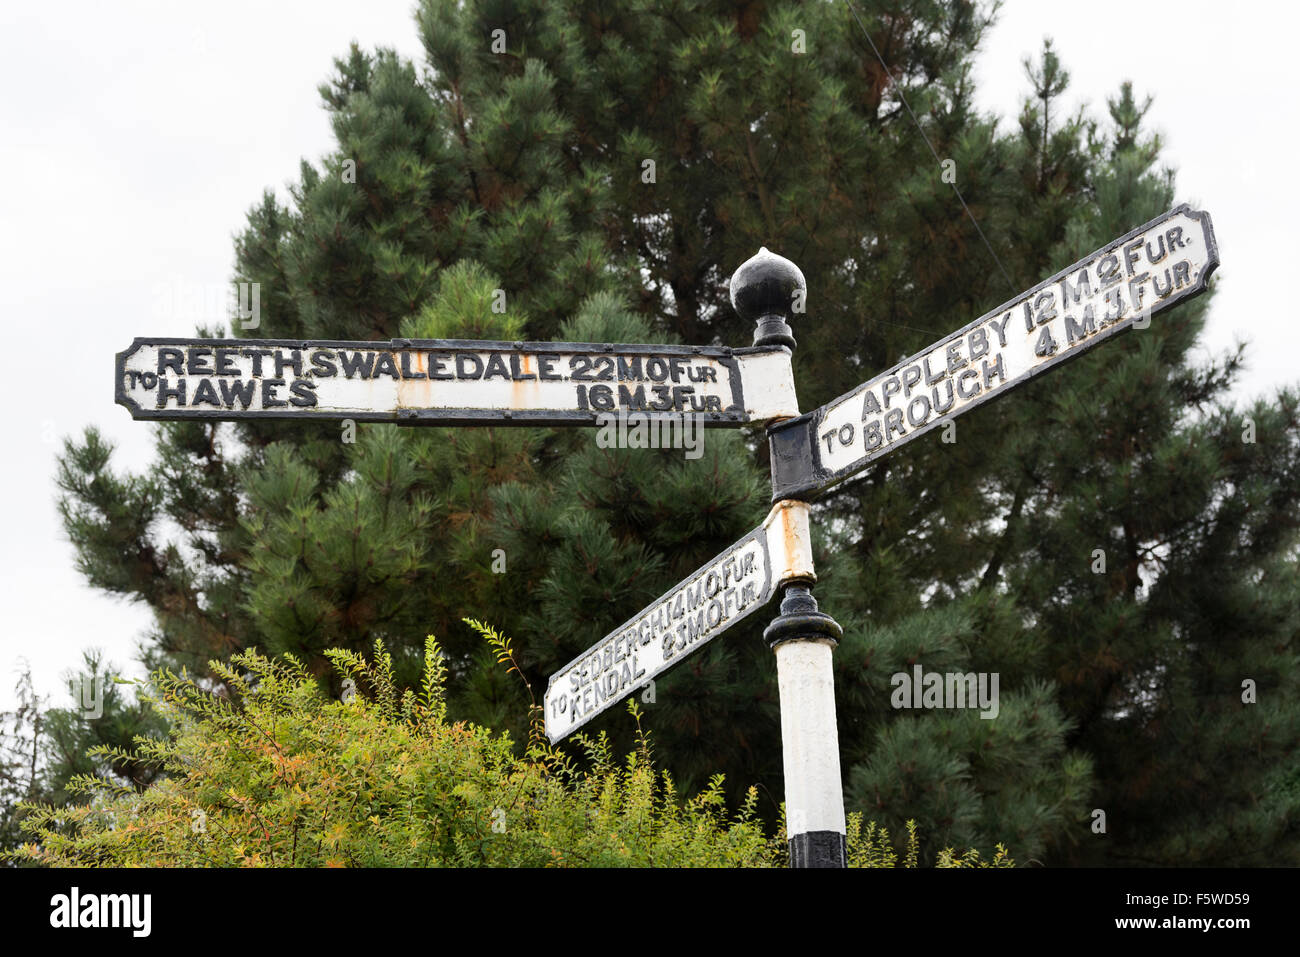 Old road direction sign in miles and furlongs, in the market town of Kirkby Stephen, Cumbria, UK - Stock Image